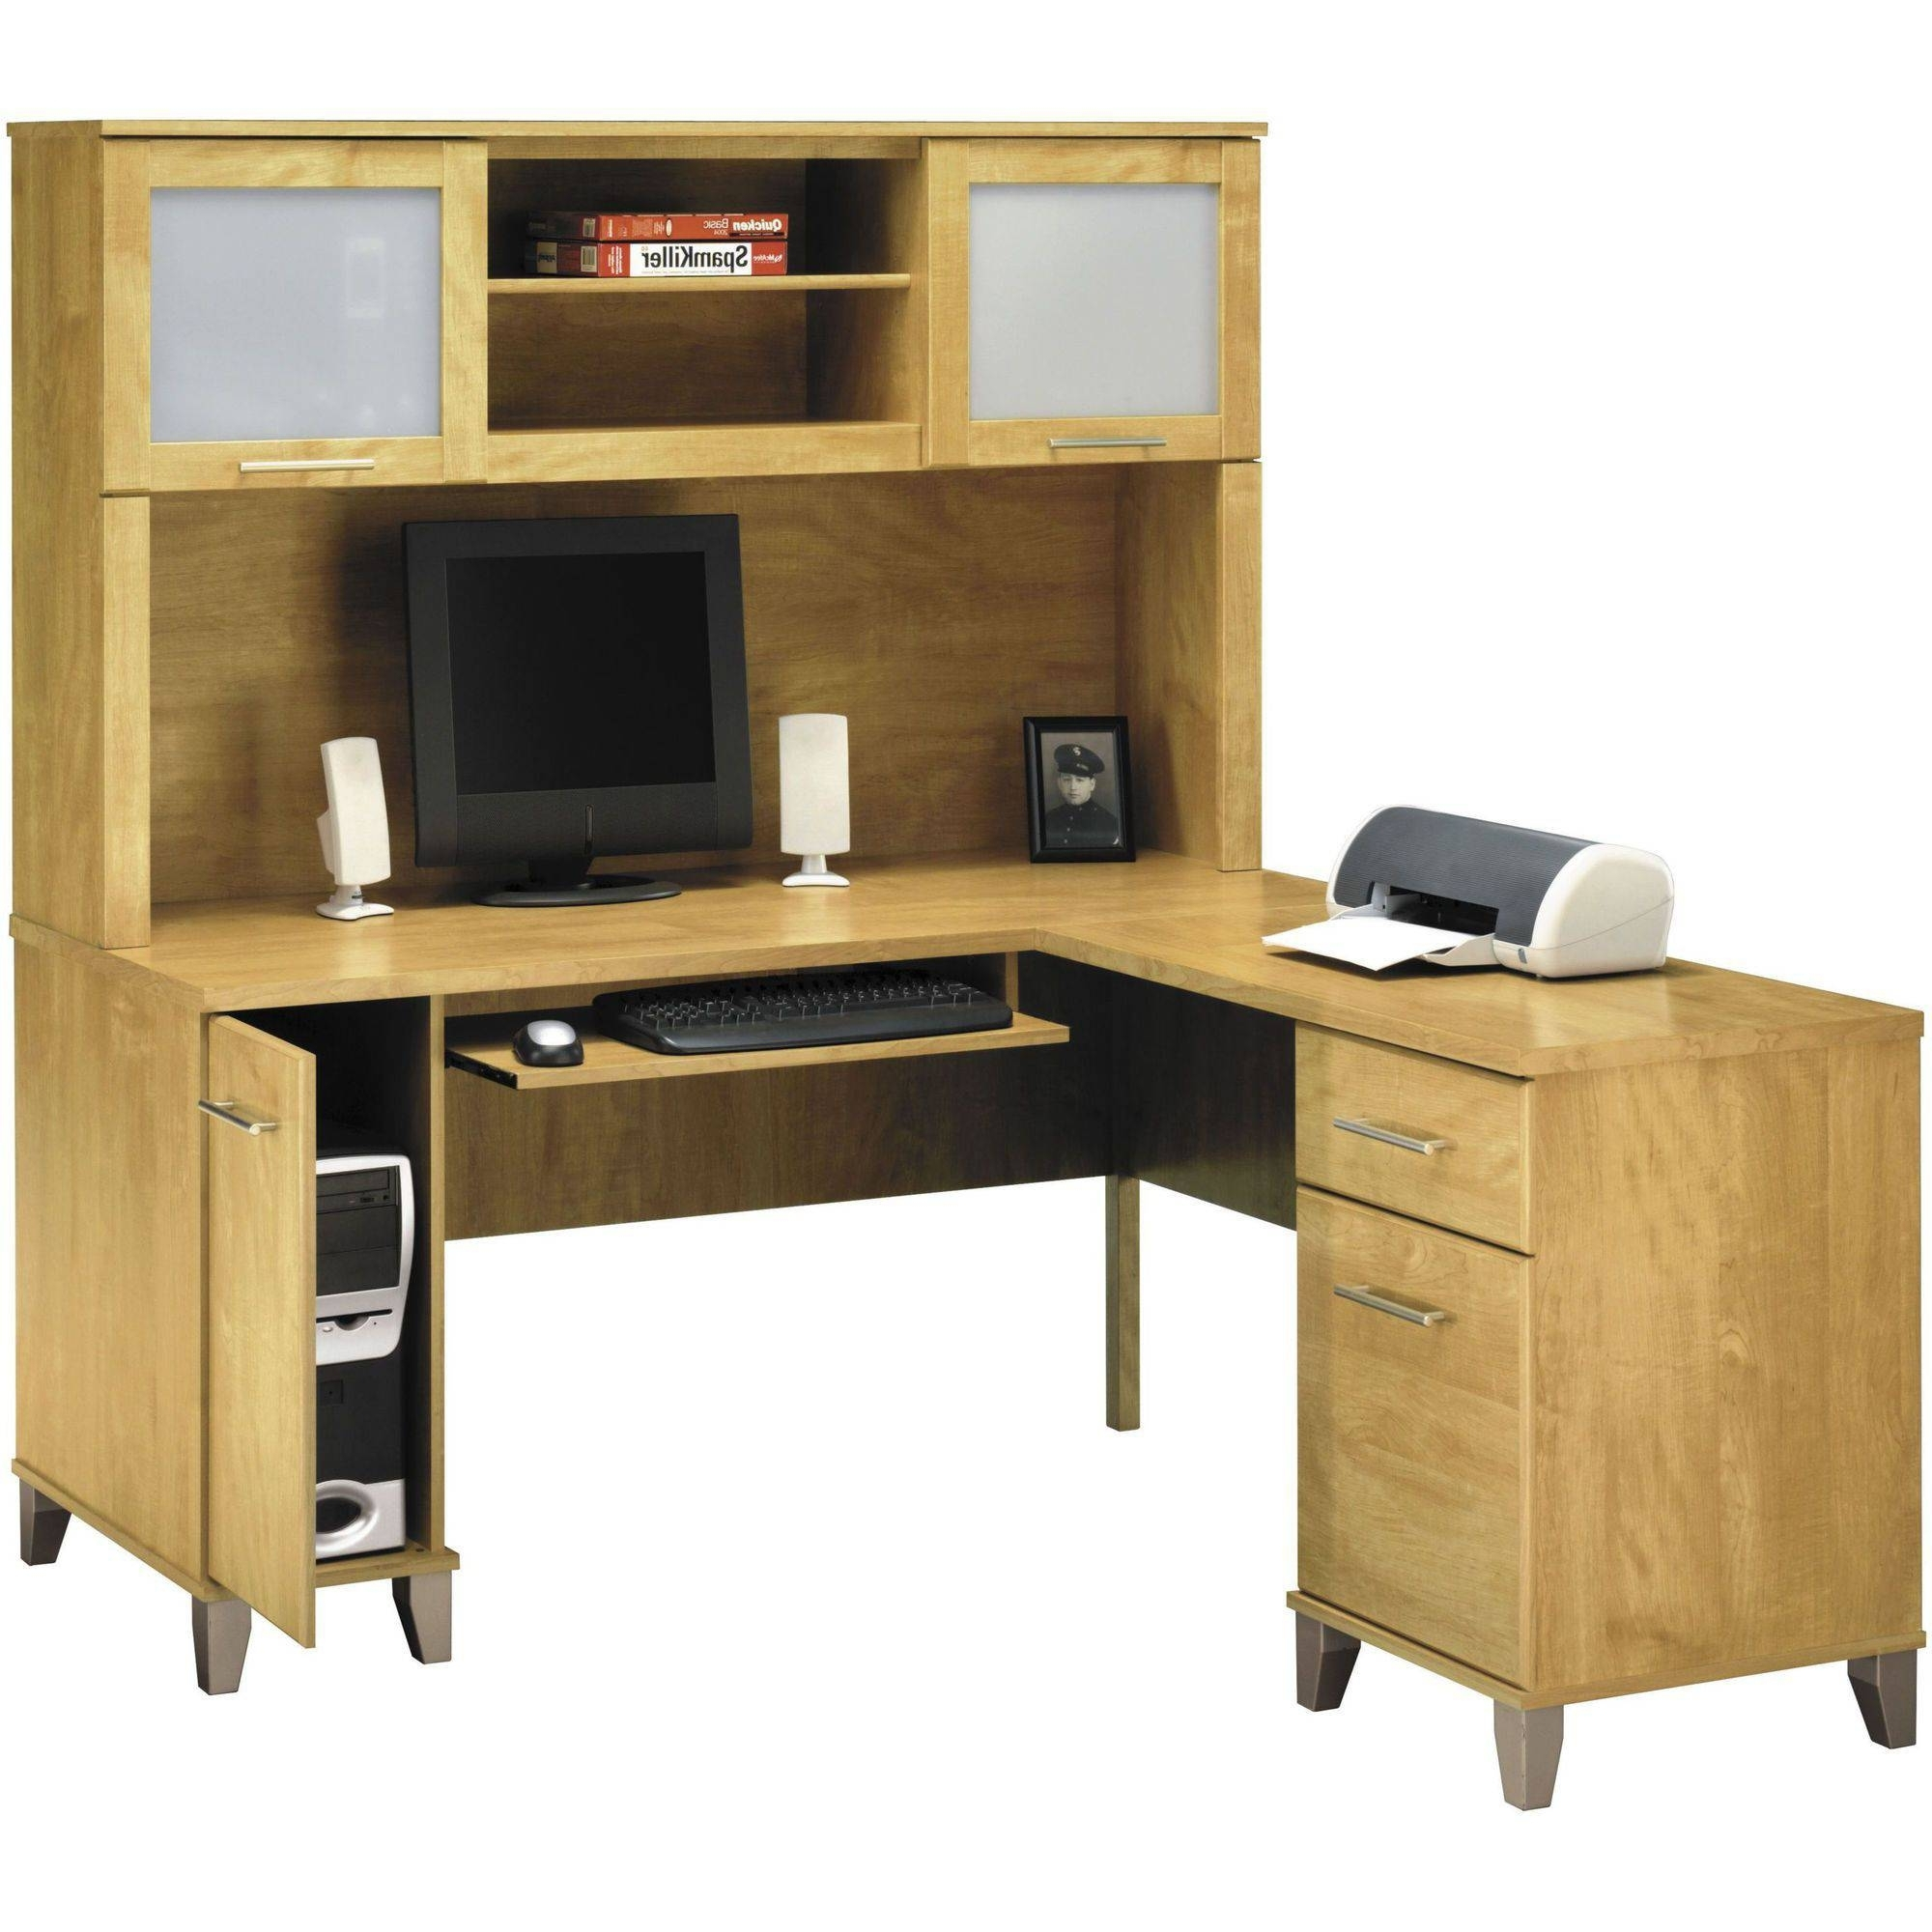 Furniture: Appealing L Shaped Desk With Hutch For Office Decor Within Most Recently Released Enclosed Computer Desks (View 13 of 20)